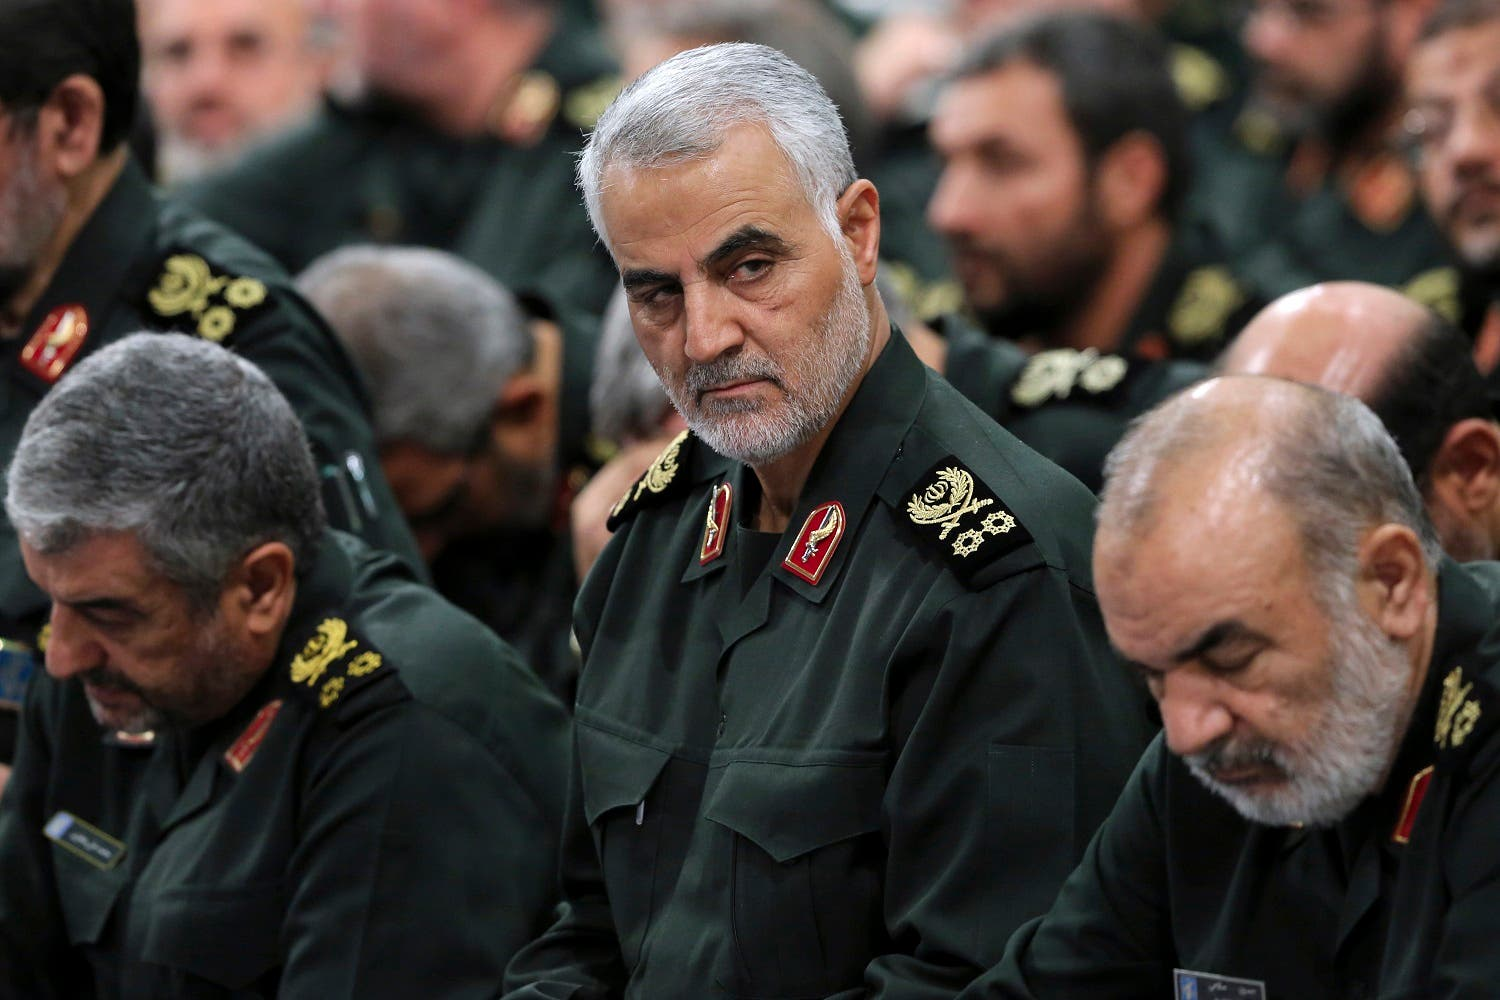 In this Sept. 18, 2016 photo Revolutionary Guard Gen. Qassem Soleimani, center, attends a meeting with Supreme Leader Ayatollah Ali Khamenei and Revolutionary Guard commanders in Tehran, Iran. (AP)